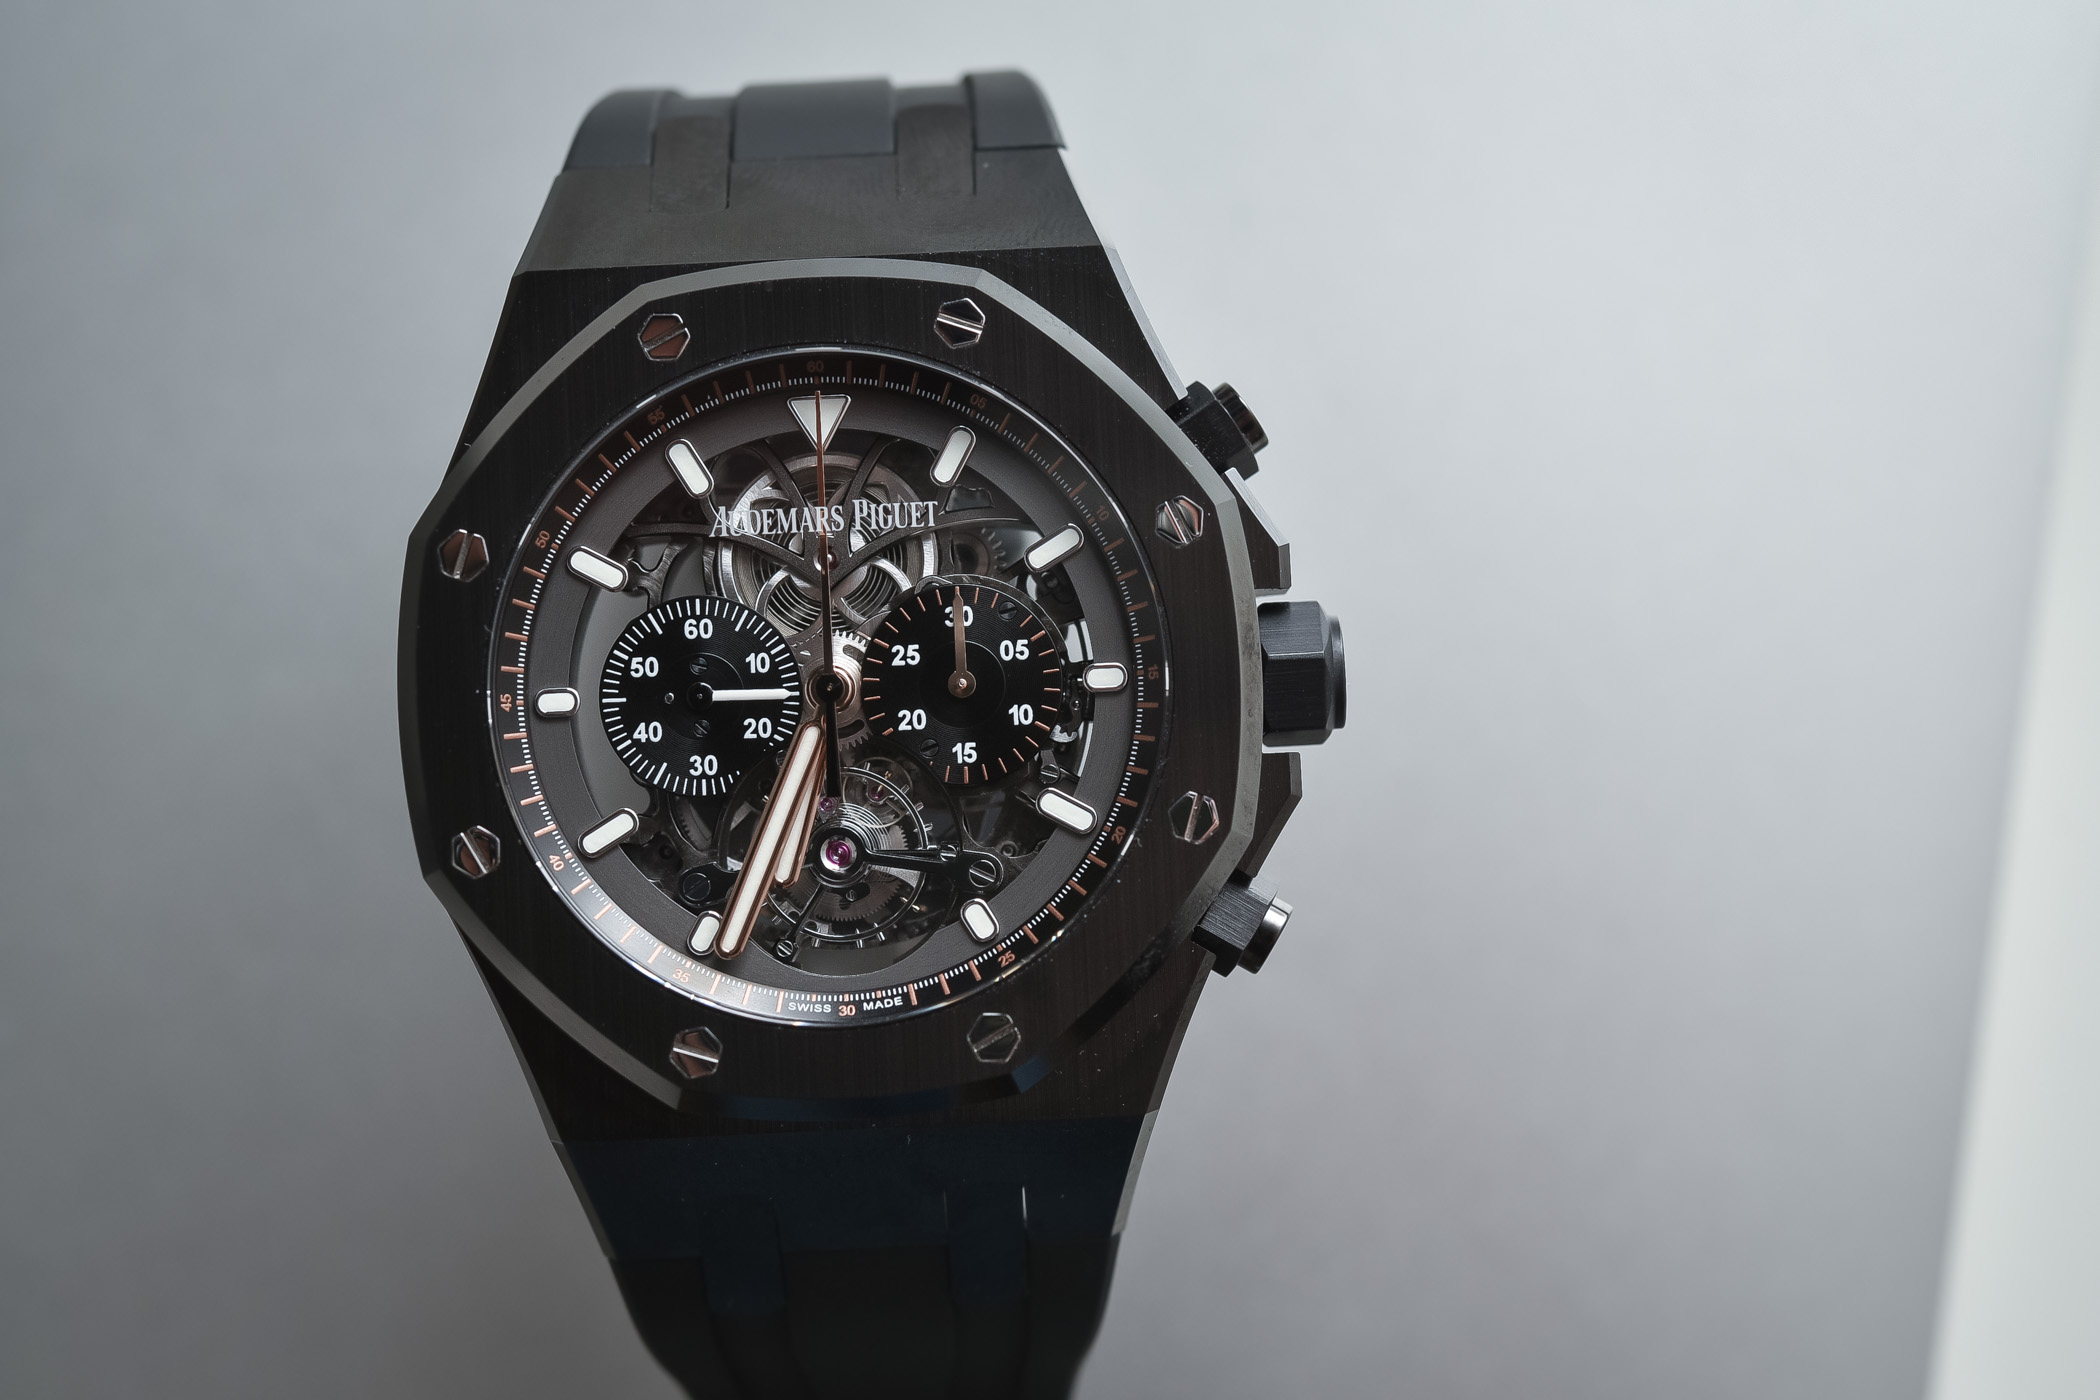 1df86bc502f Audemars Piguet Royal Oak Tourbillon Chronograph Openworked Black Ceramic  ref. 26343CE